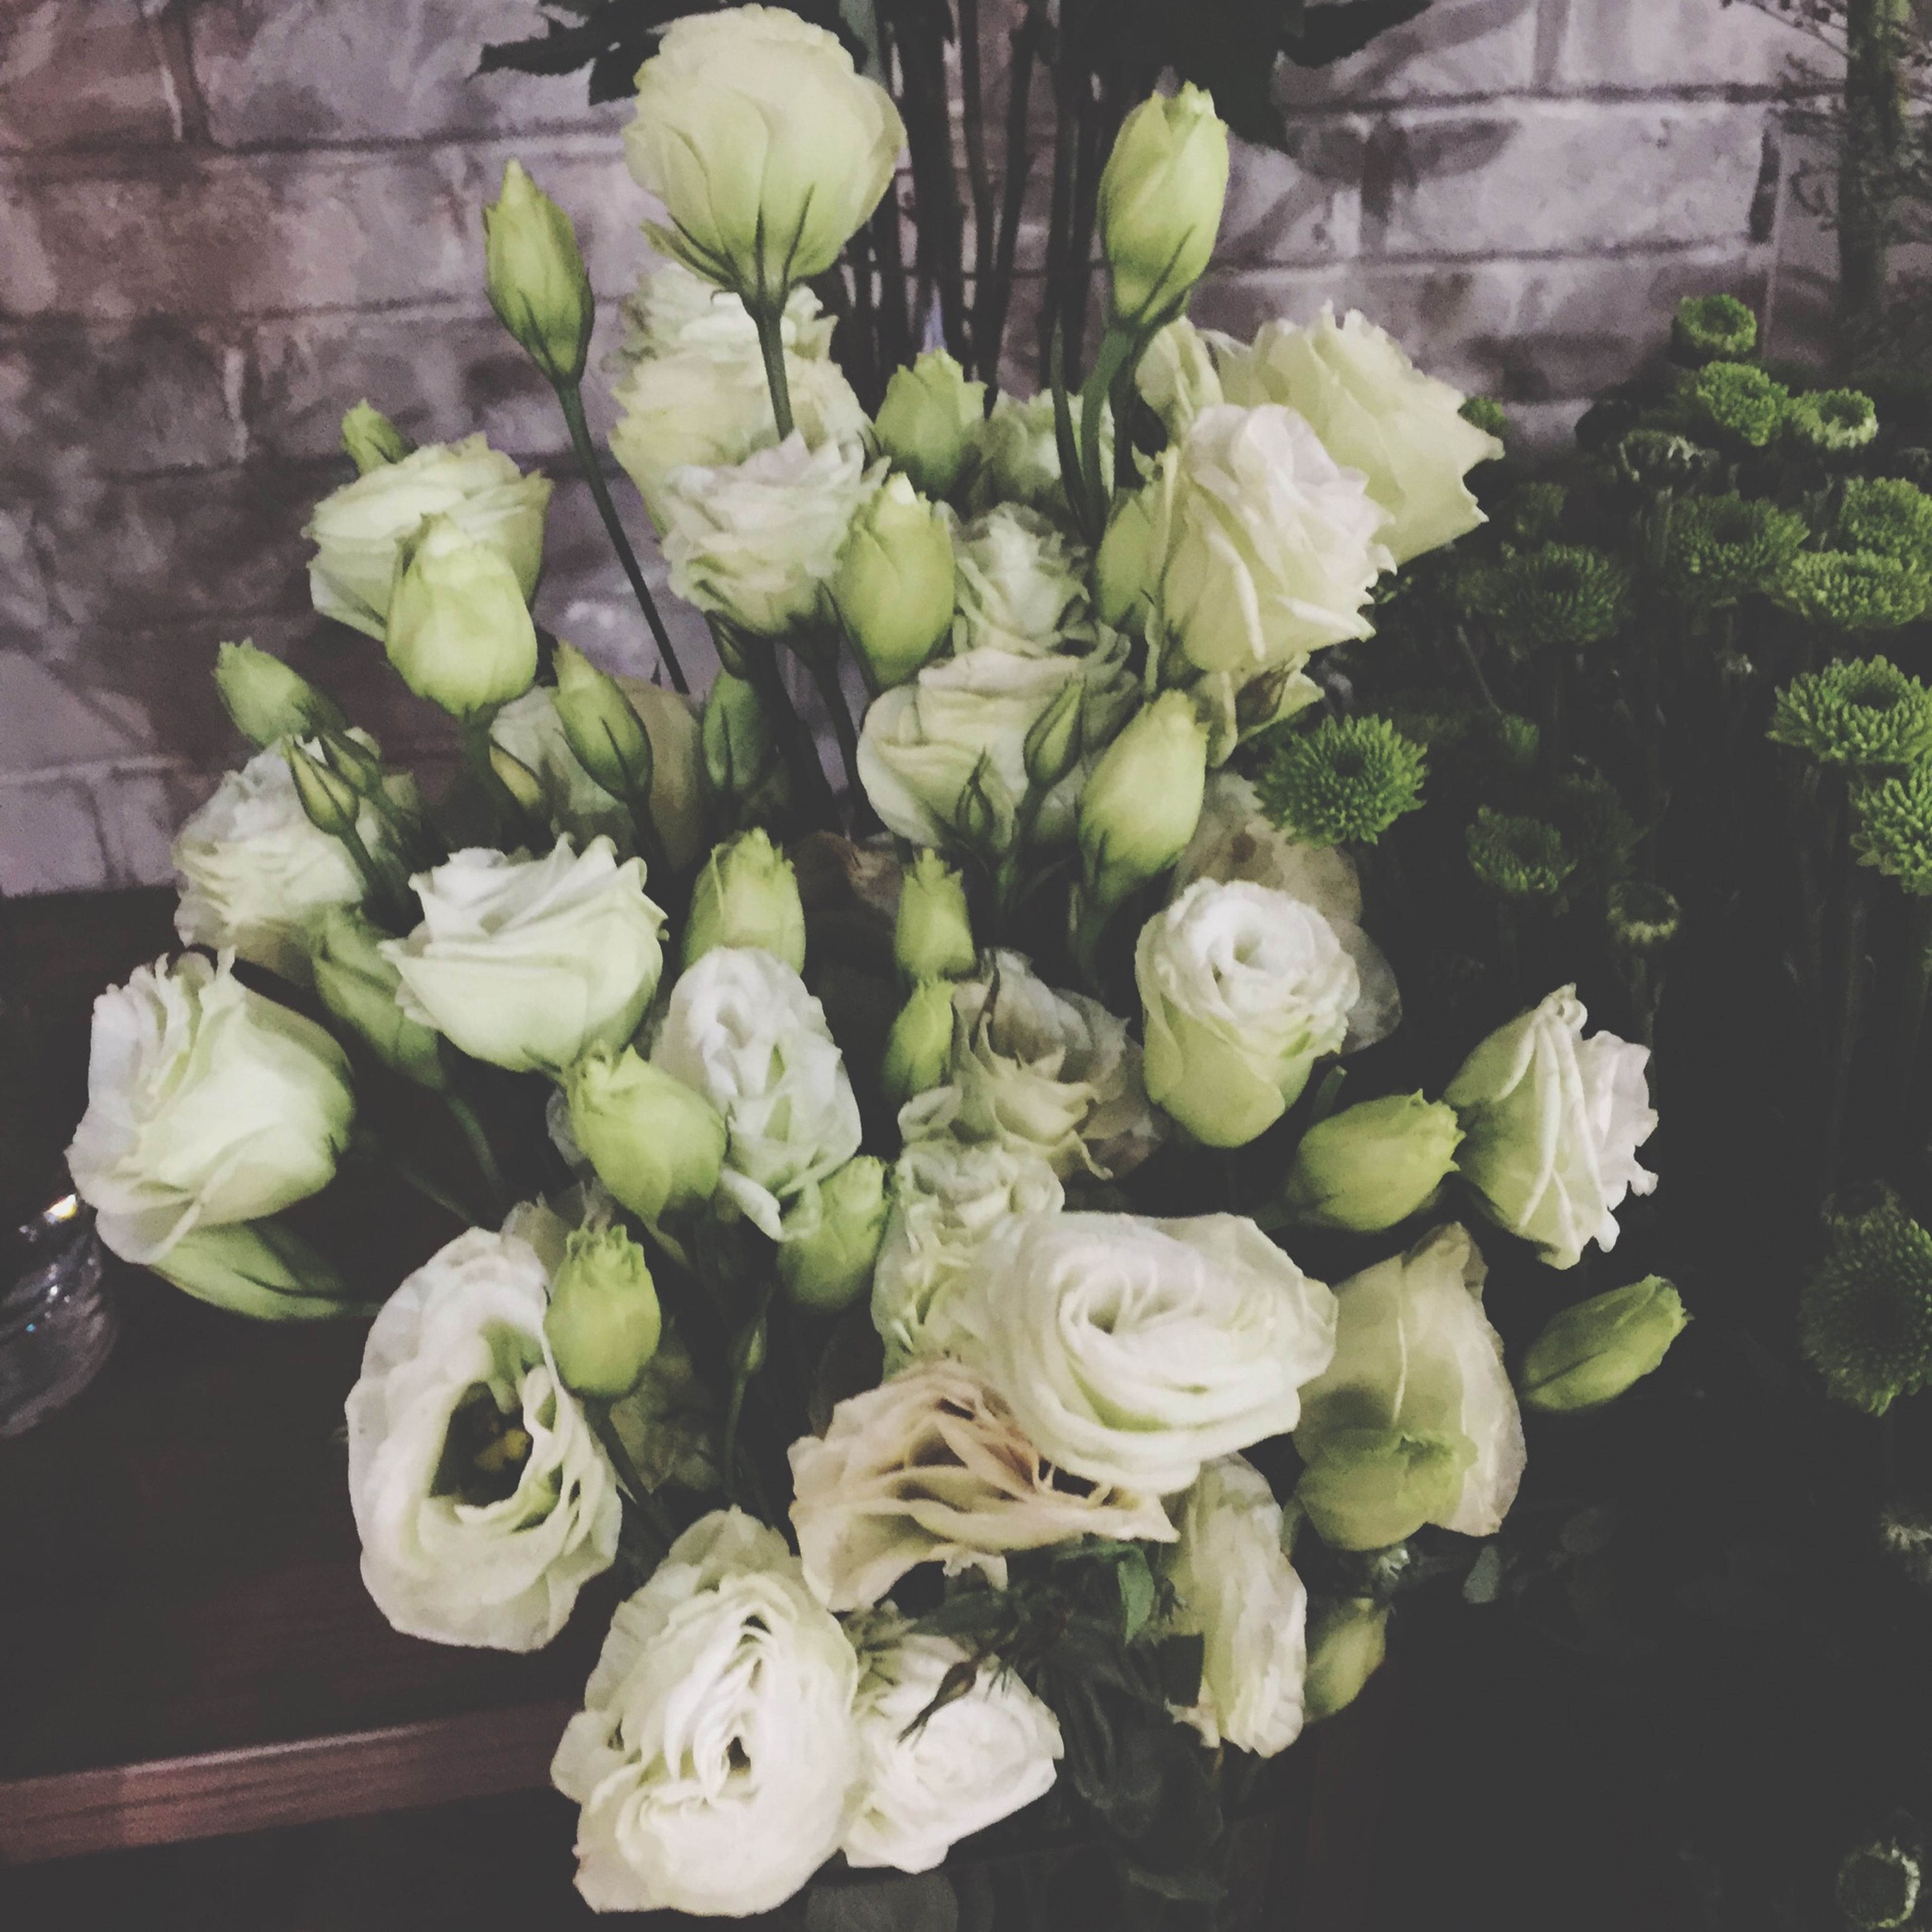 flower, freshness, fragility, growth, petal, plant, leaf, beauty in nature, flower head, high angle view, nature, white color, close-up, green color, bunch of flowers, blooming, rose - flower, bouquet, botany, indoors